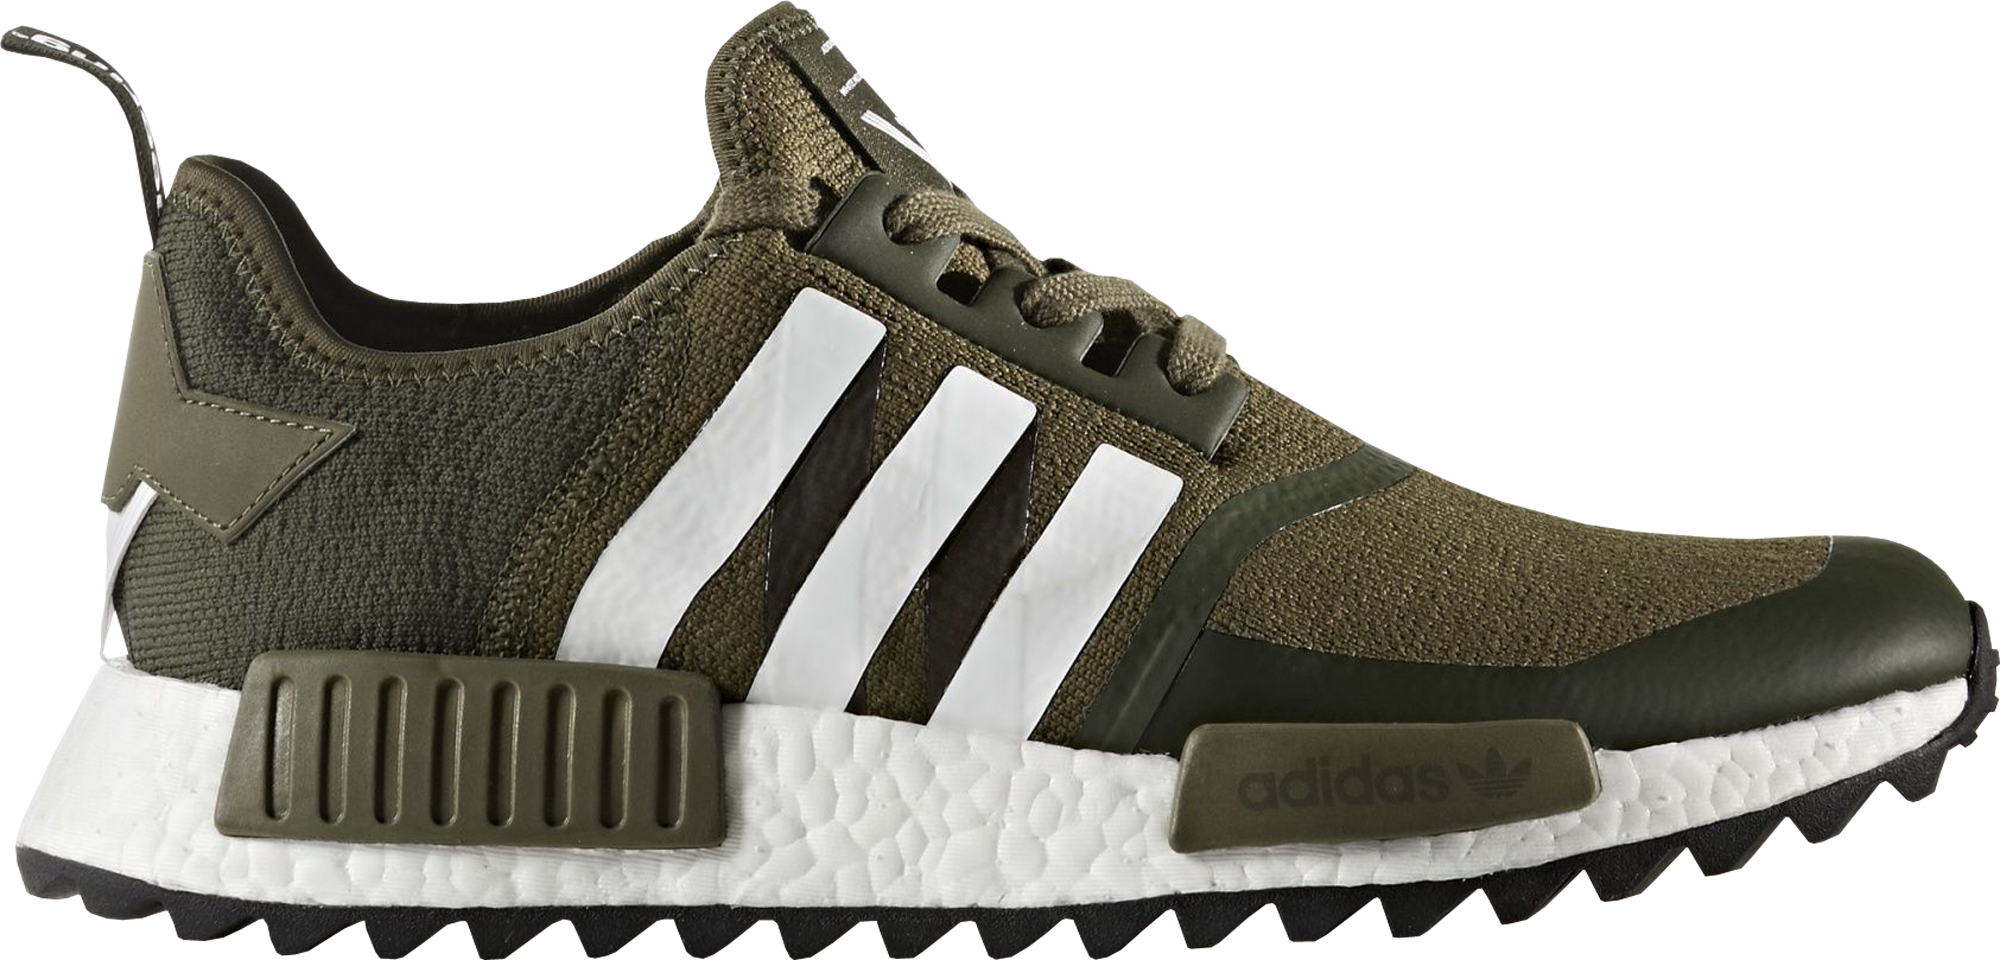 2ed66cfd6a636 Check out the adidas NMD R1 Trail White Mountaineering Trace Olive  available on StockX